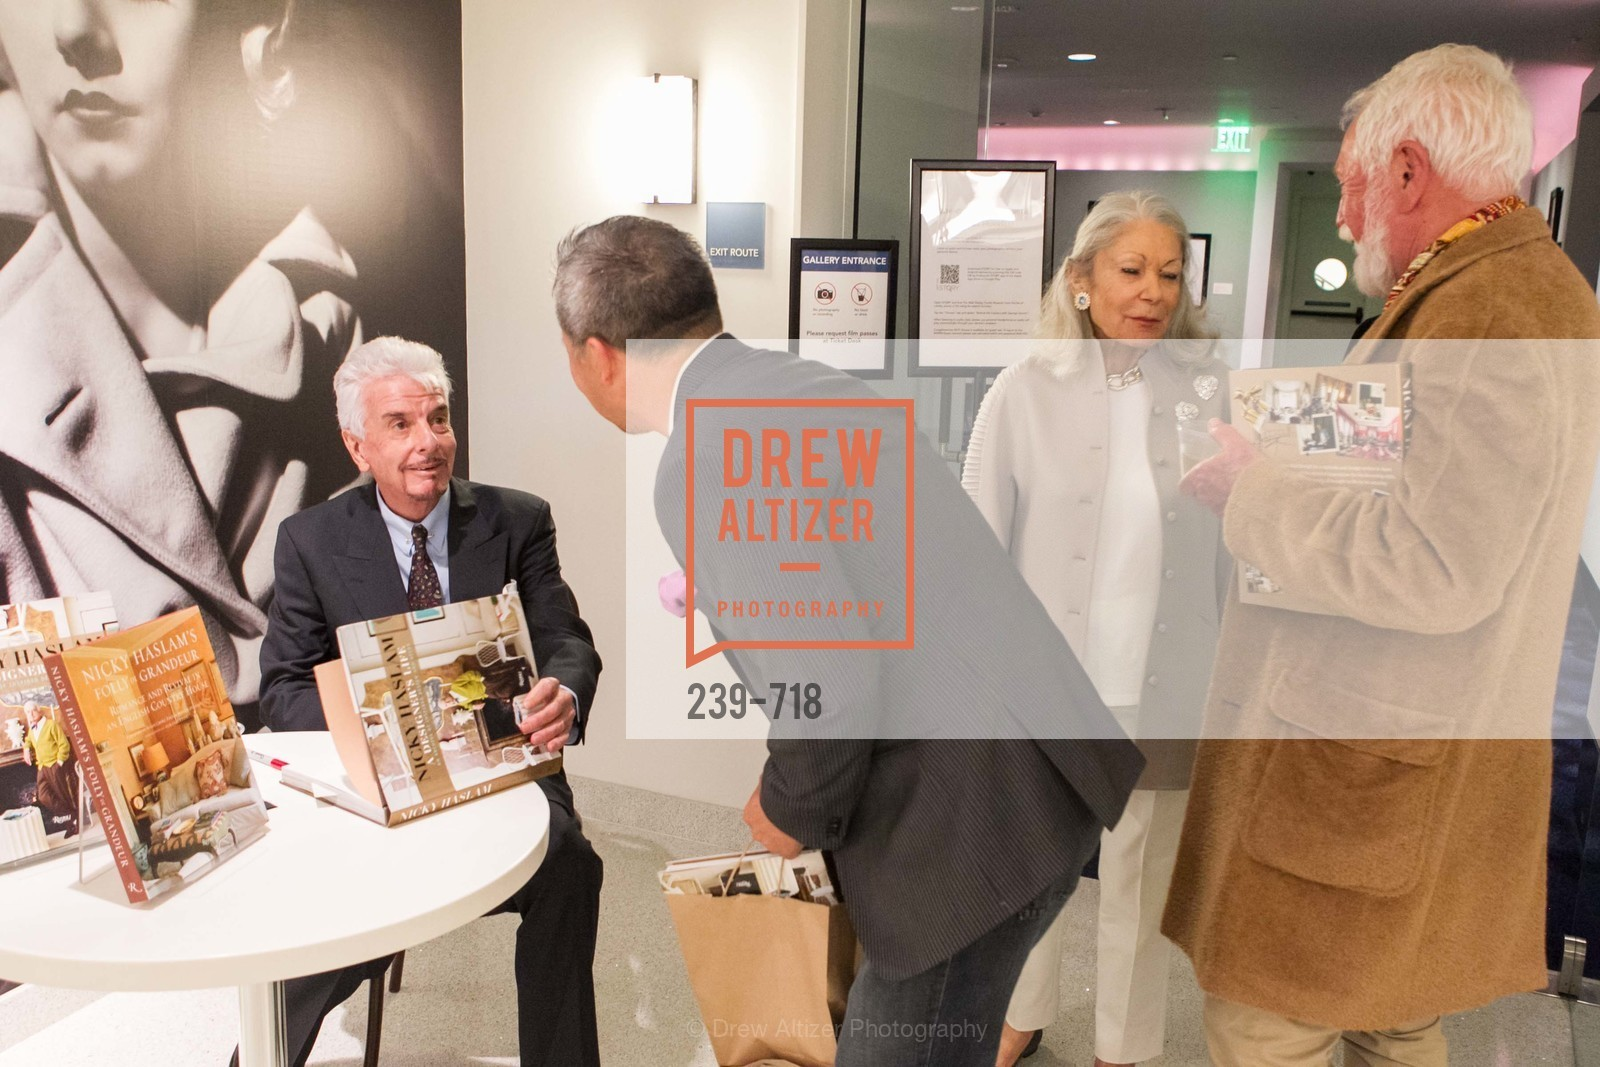 Nicky Haslam, Benjamin Dhong, Denise Hale, Lewis Sykes, ICAA Hosts NICKY HASLAM'S Lecture and Book Signing, US, May 12th, 2015,Drew Altizer, Drew Altizer Photography, full-service agency, private events, San Francisco photographer, photographer california